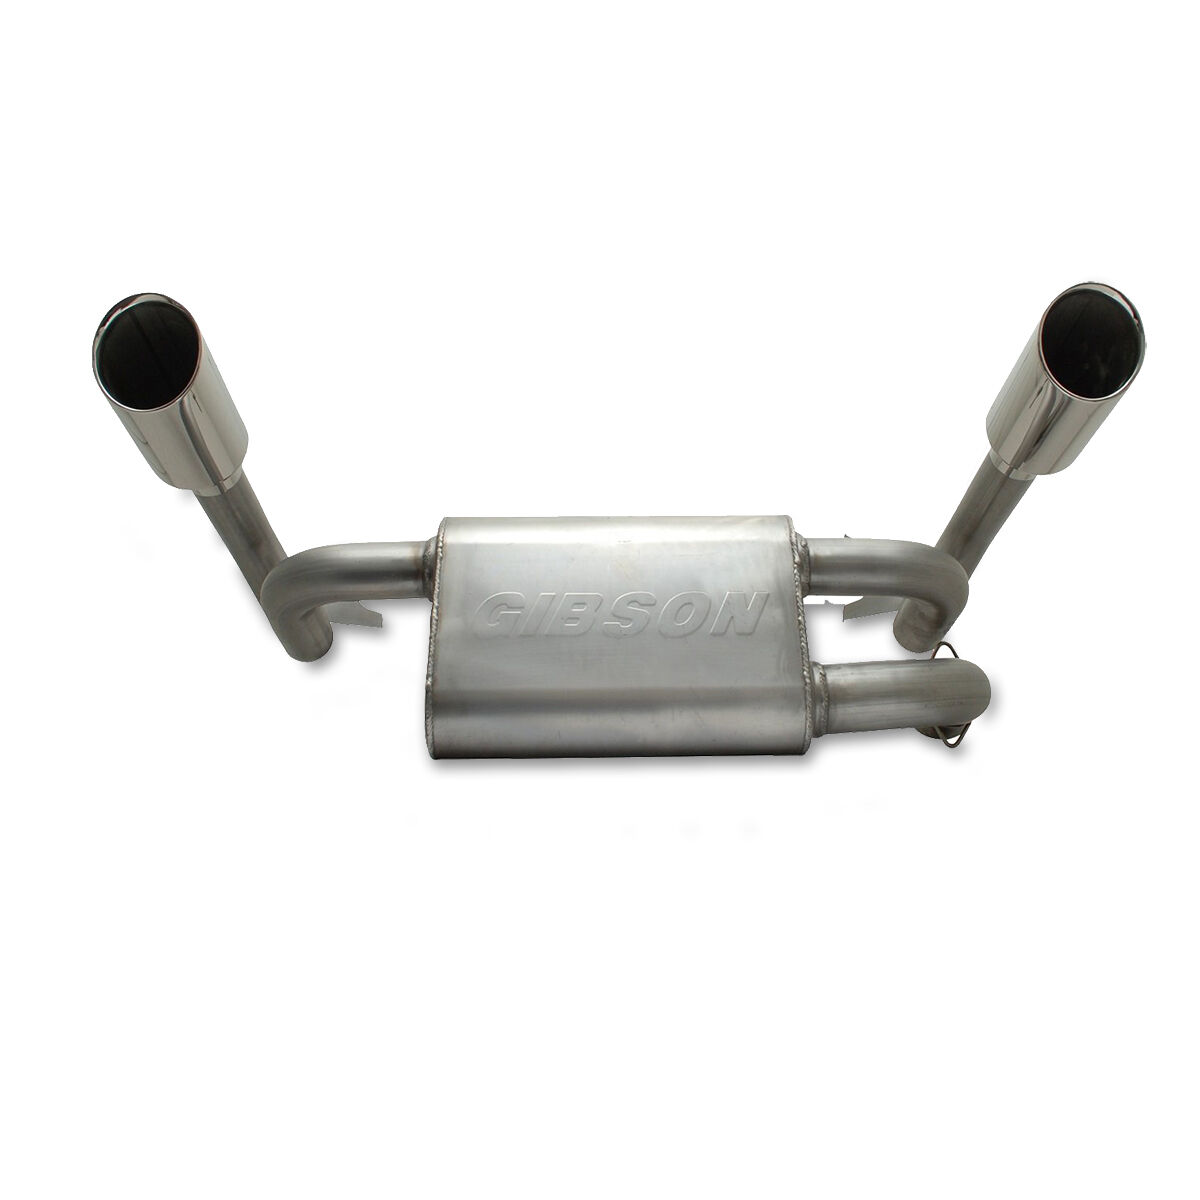 Details about Gibson Exhaust 98016 Stainless Steel Dual Slip-On Exhaust